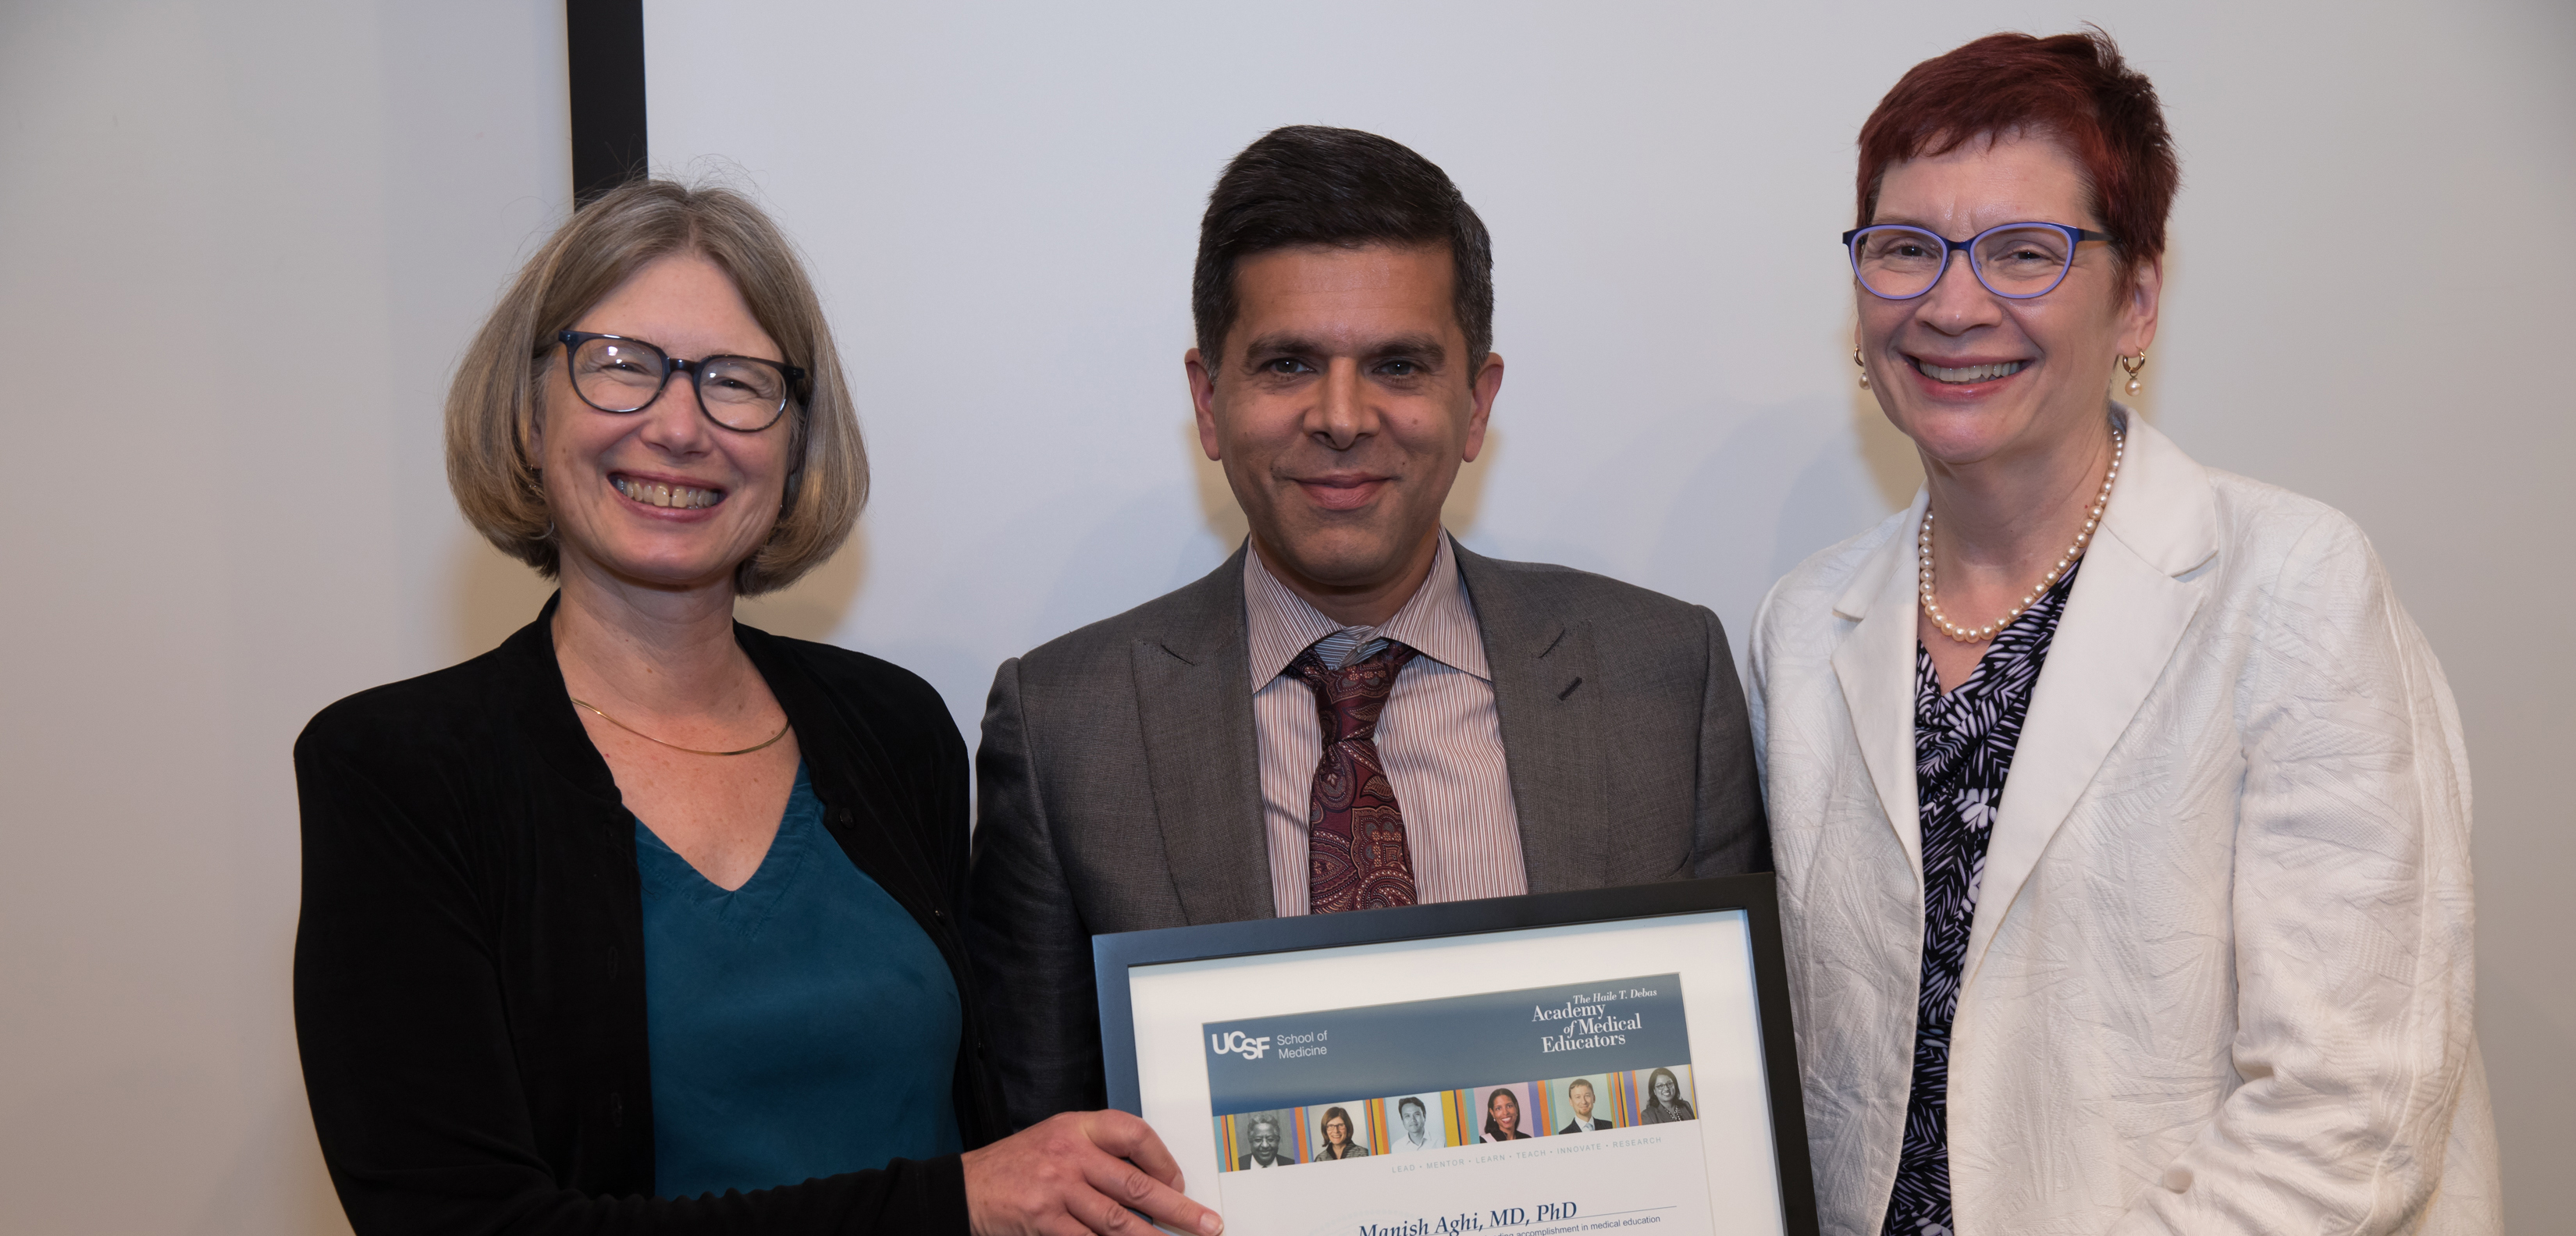 Manish Aghi (center) is inducted into the Academy on September 26, 2018